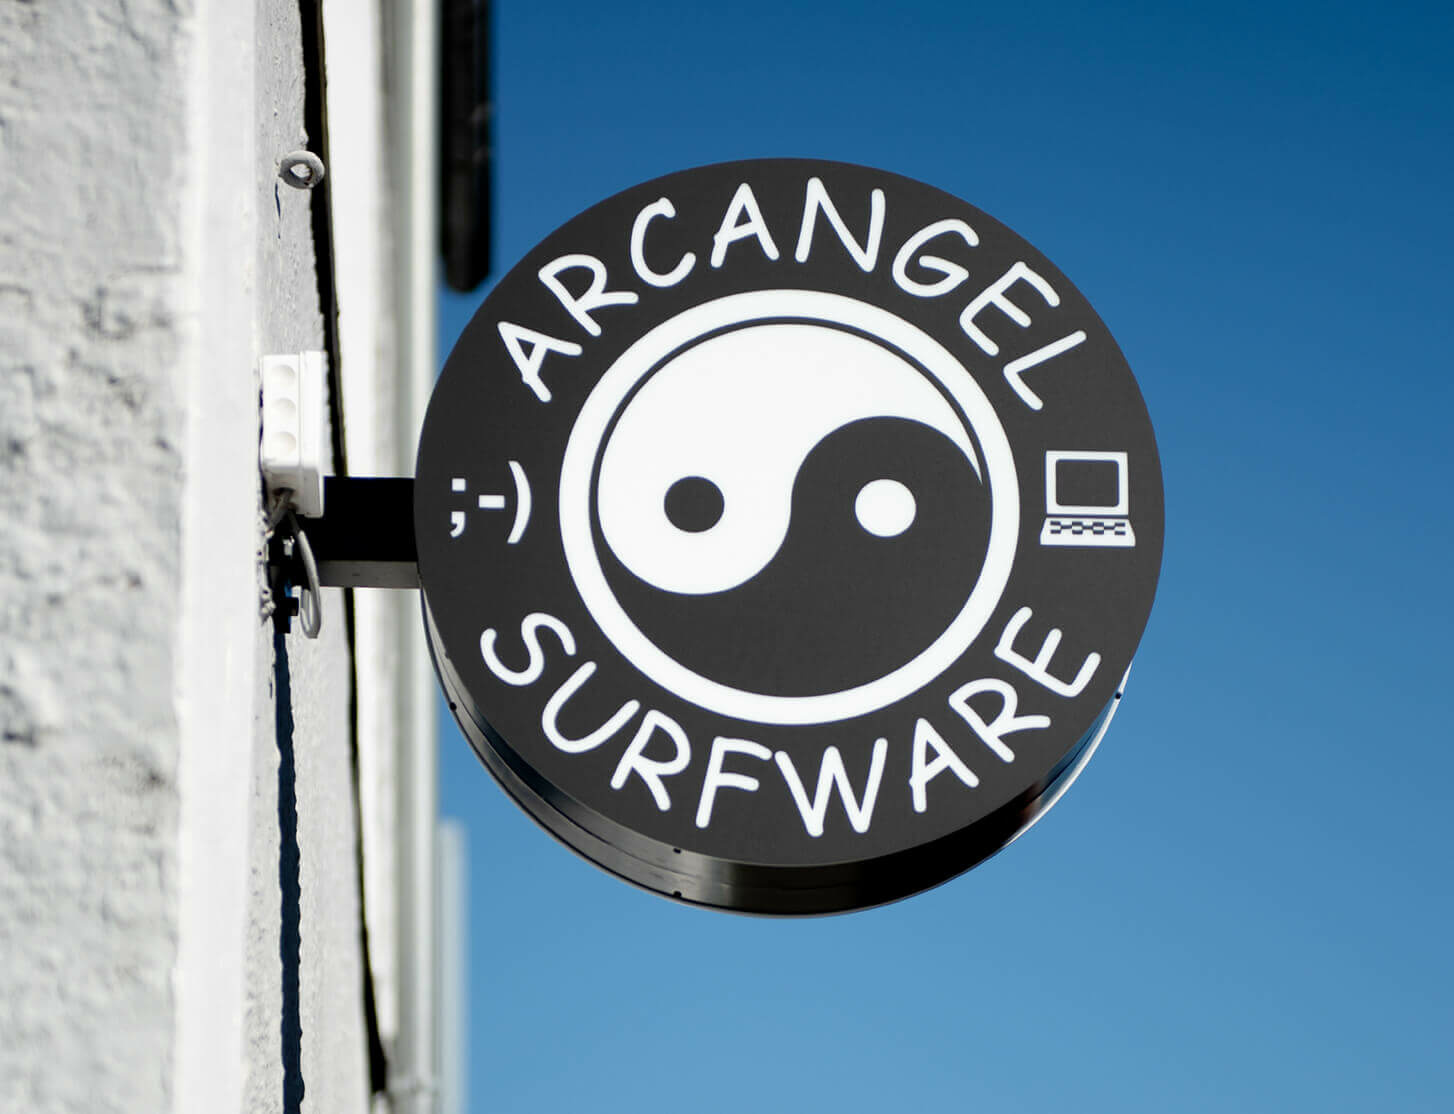 Arcangel Surfware Pop-up and In Conversation event at New Museum